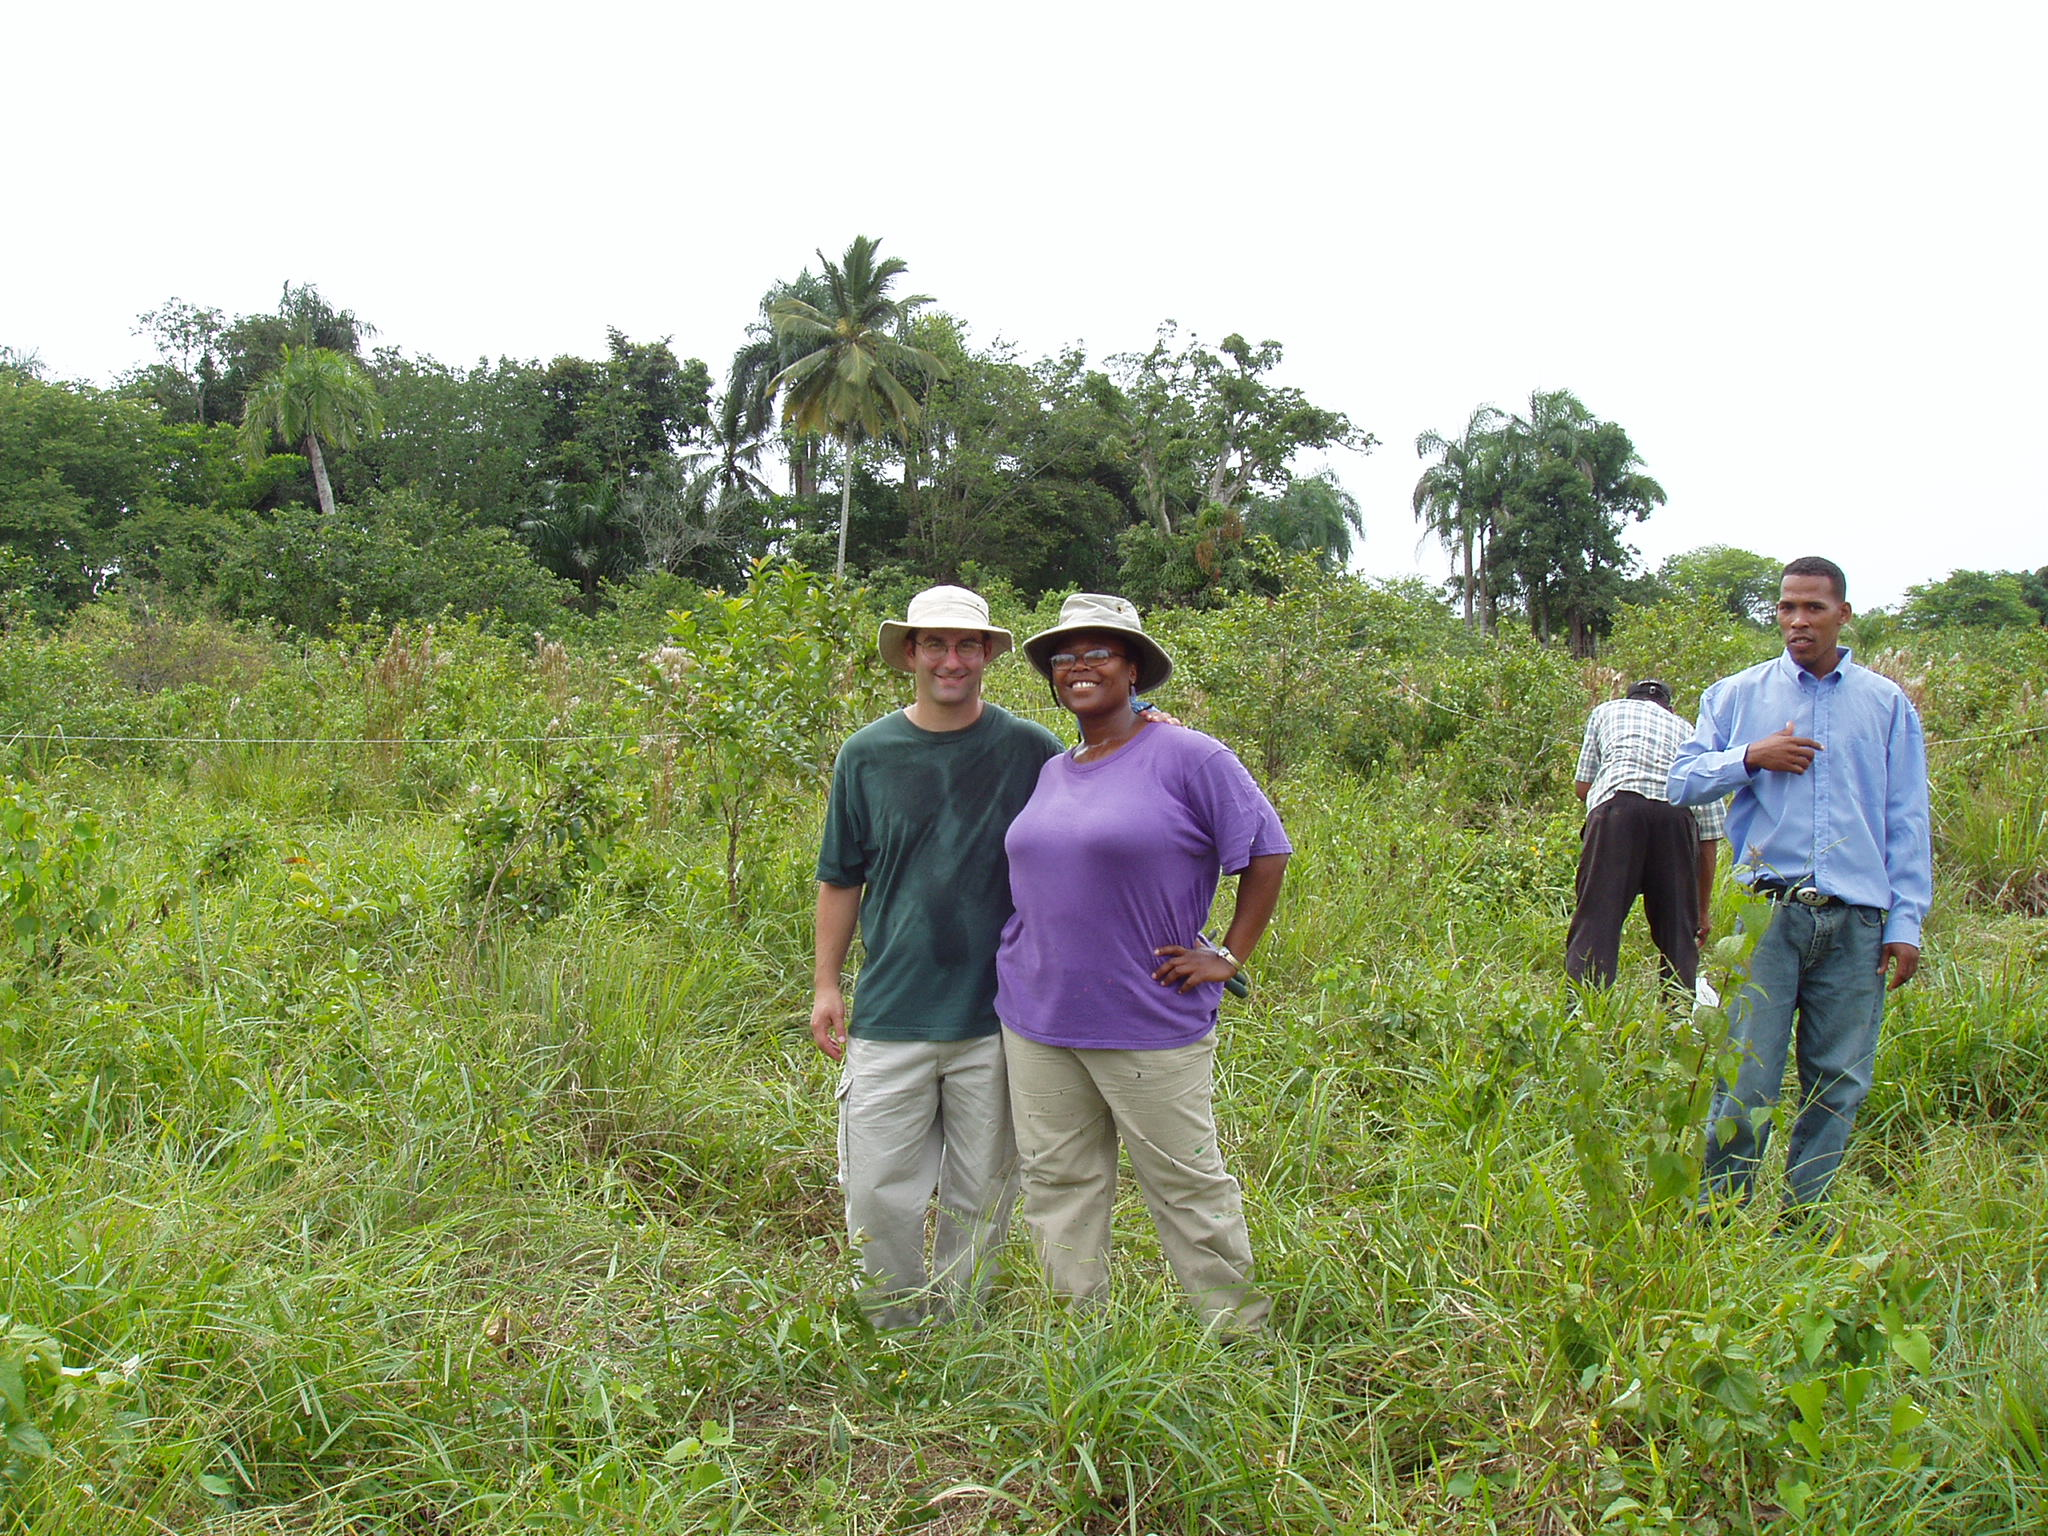 SIP Co-Directors Victoria Santos and Peter Blaustein at the site of the Learning Center before it was built